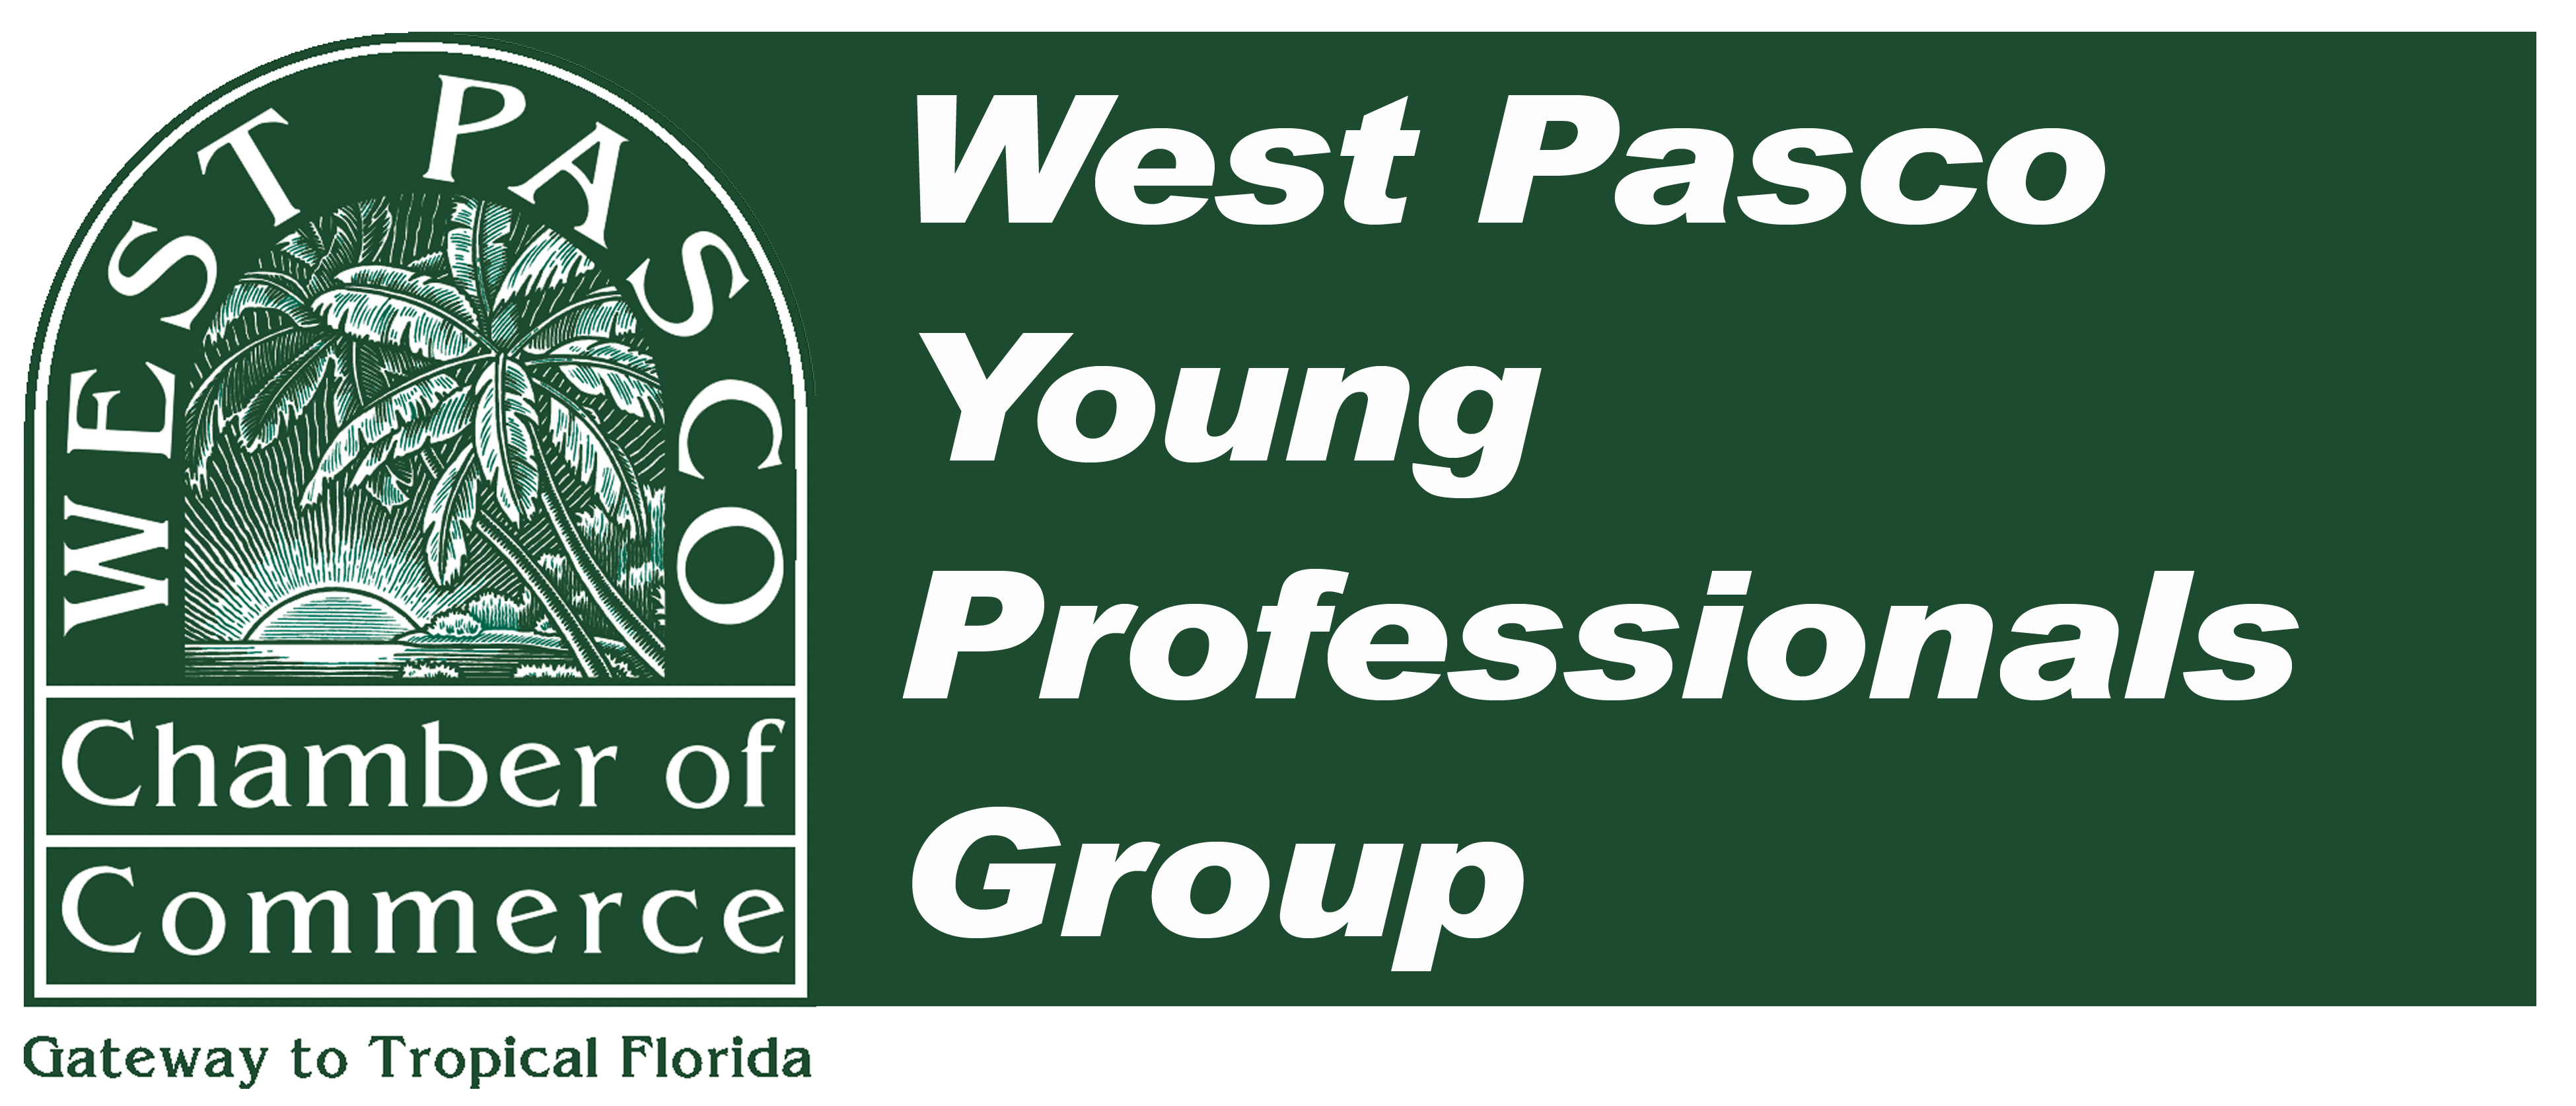 West Pasco Young Professionals